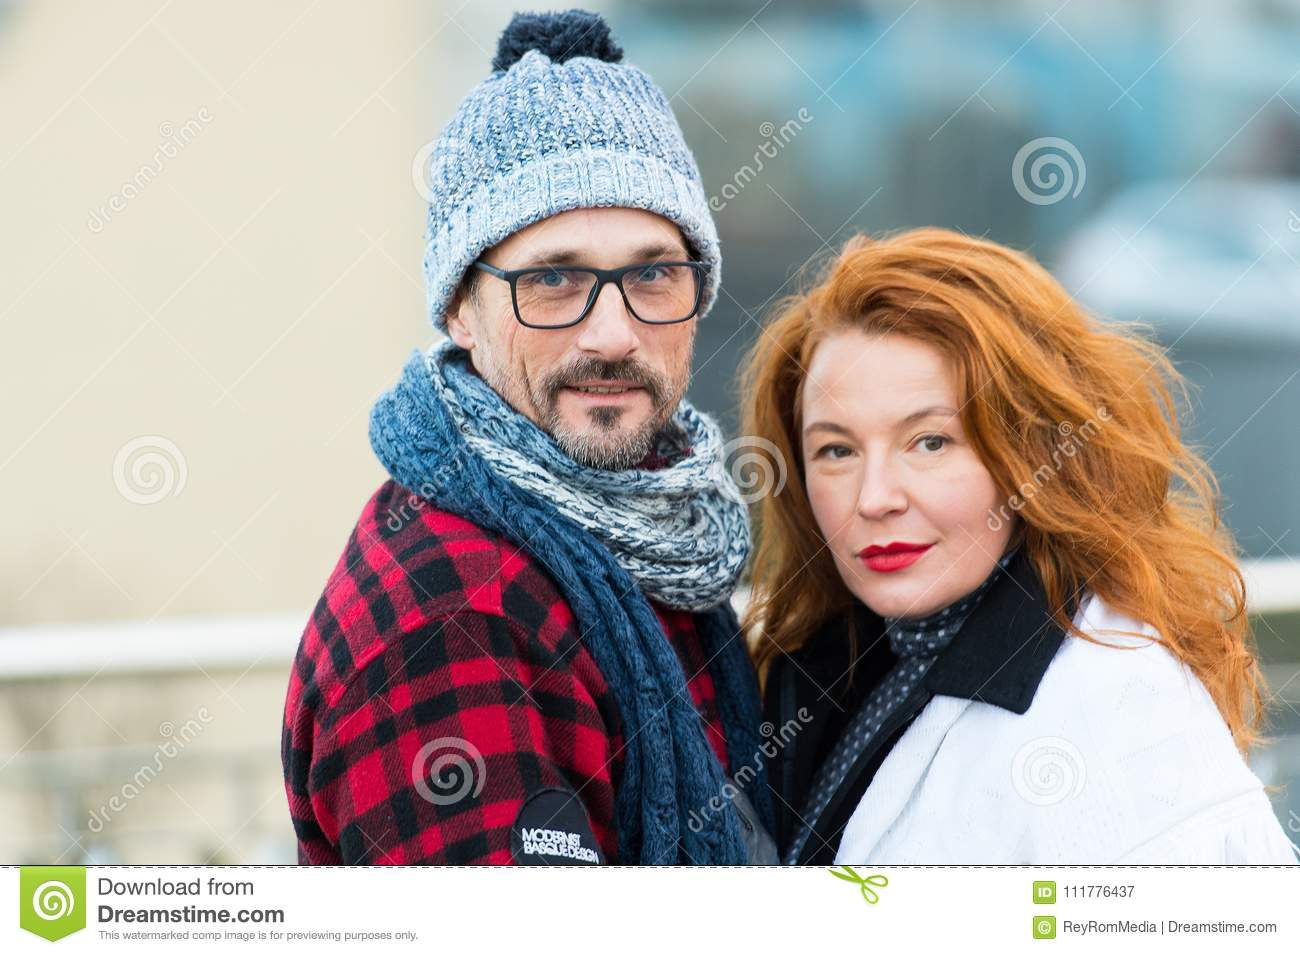 Portrait of sweet couple on street. Smiled man and happy woman posing for picture. Portrait of urban family. Red hair woman and ga